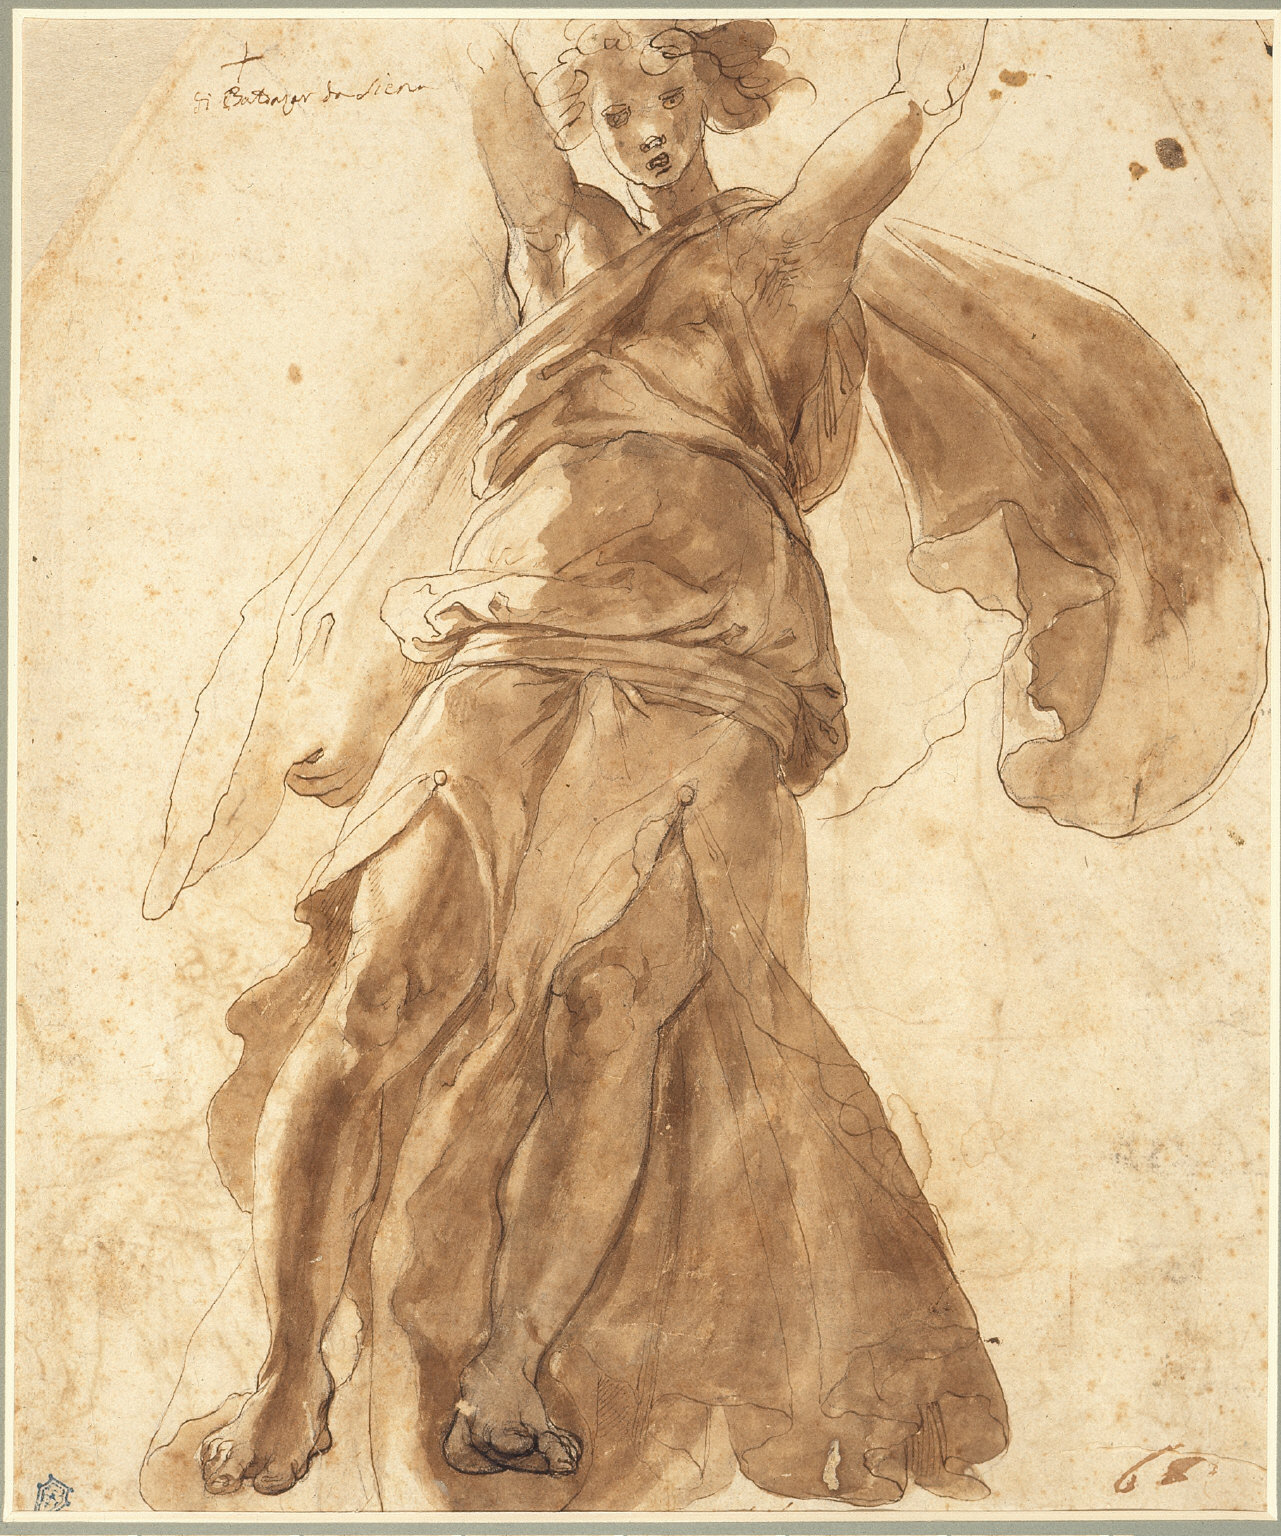 Dancing Figure and Dancing Figure and Other Studies